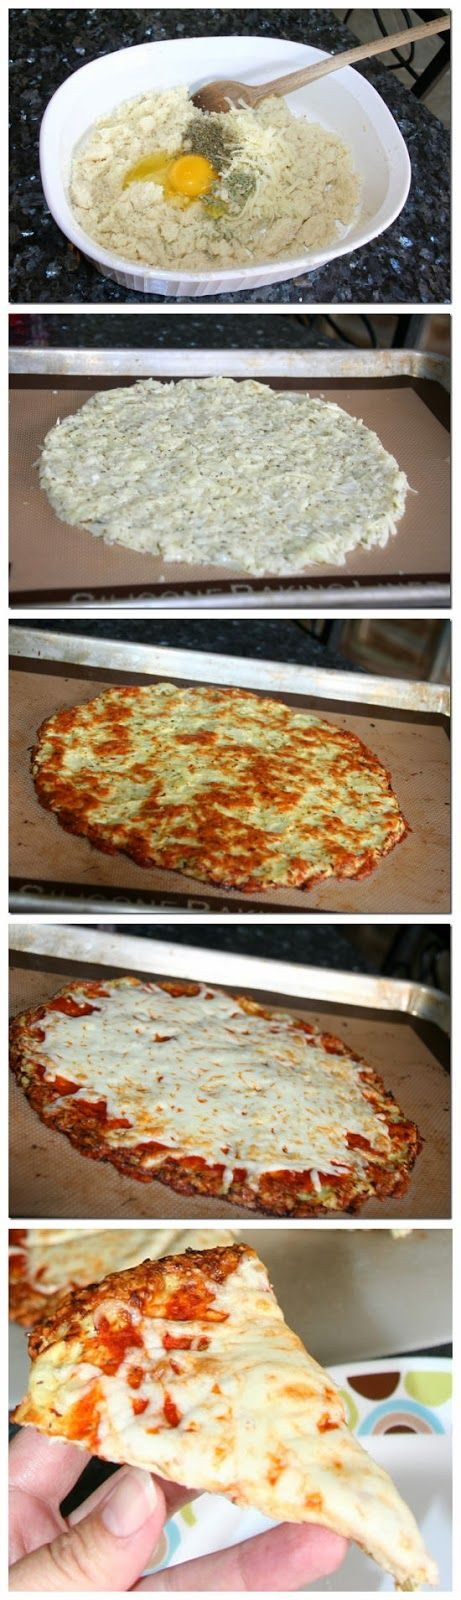 Cauliflower Crust Pizza! I can eat all the pizza I want without get fat!! Yes!!!!!!!  pizza de coliflor